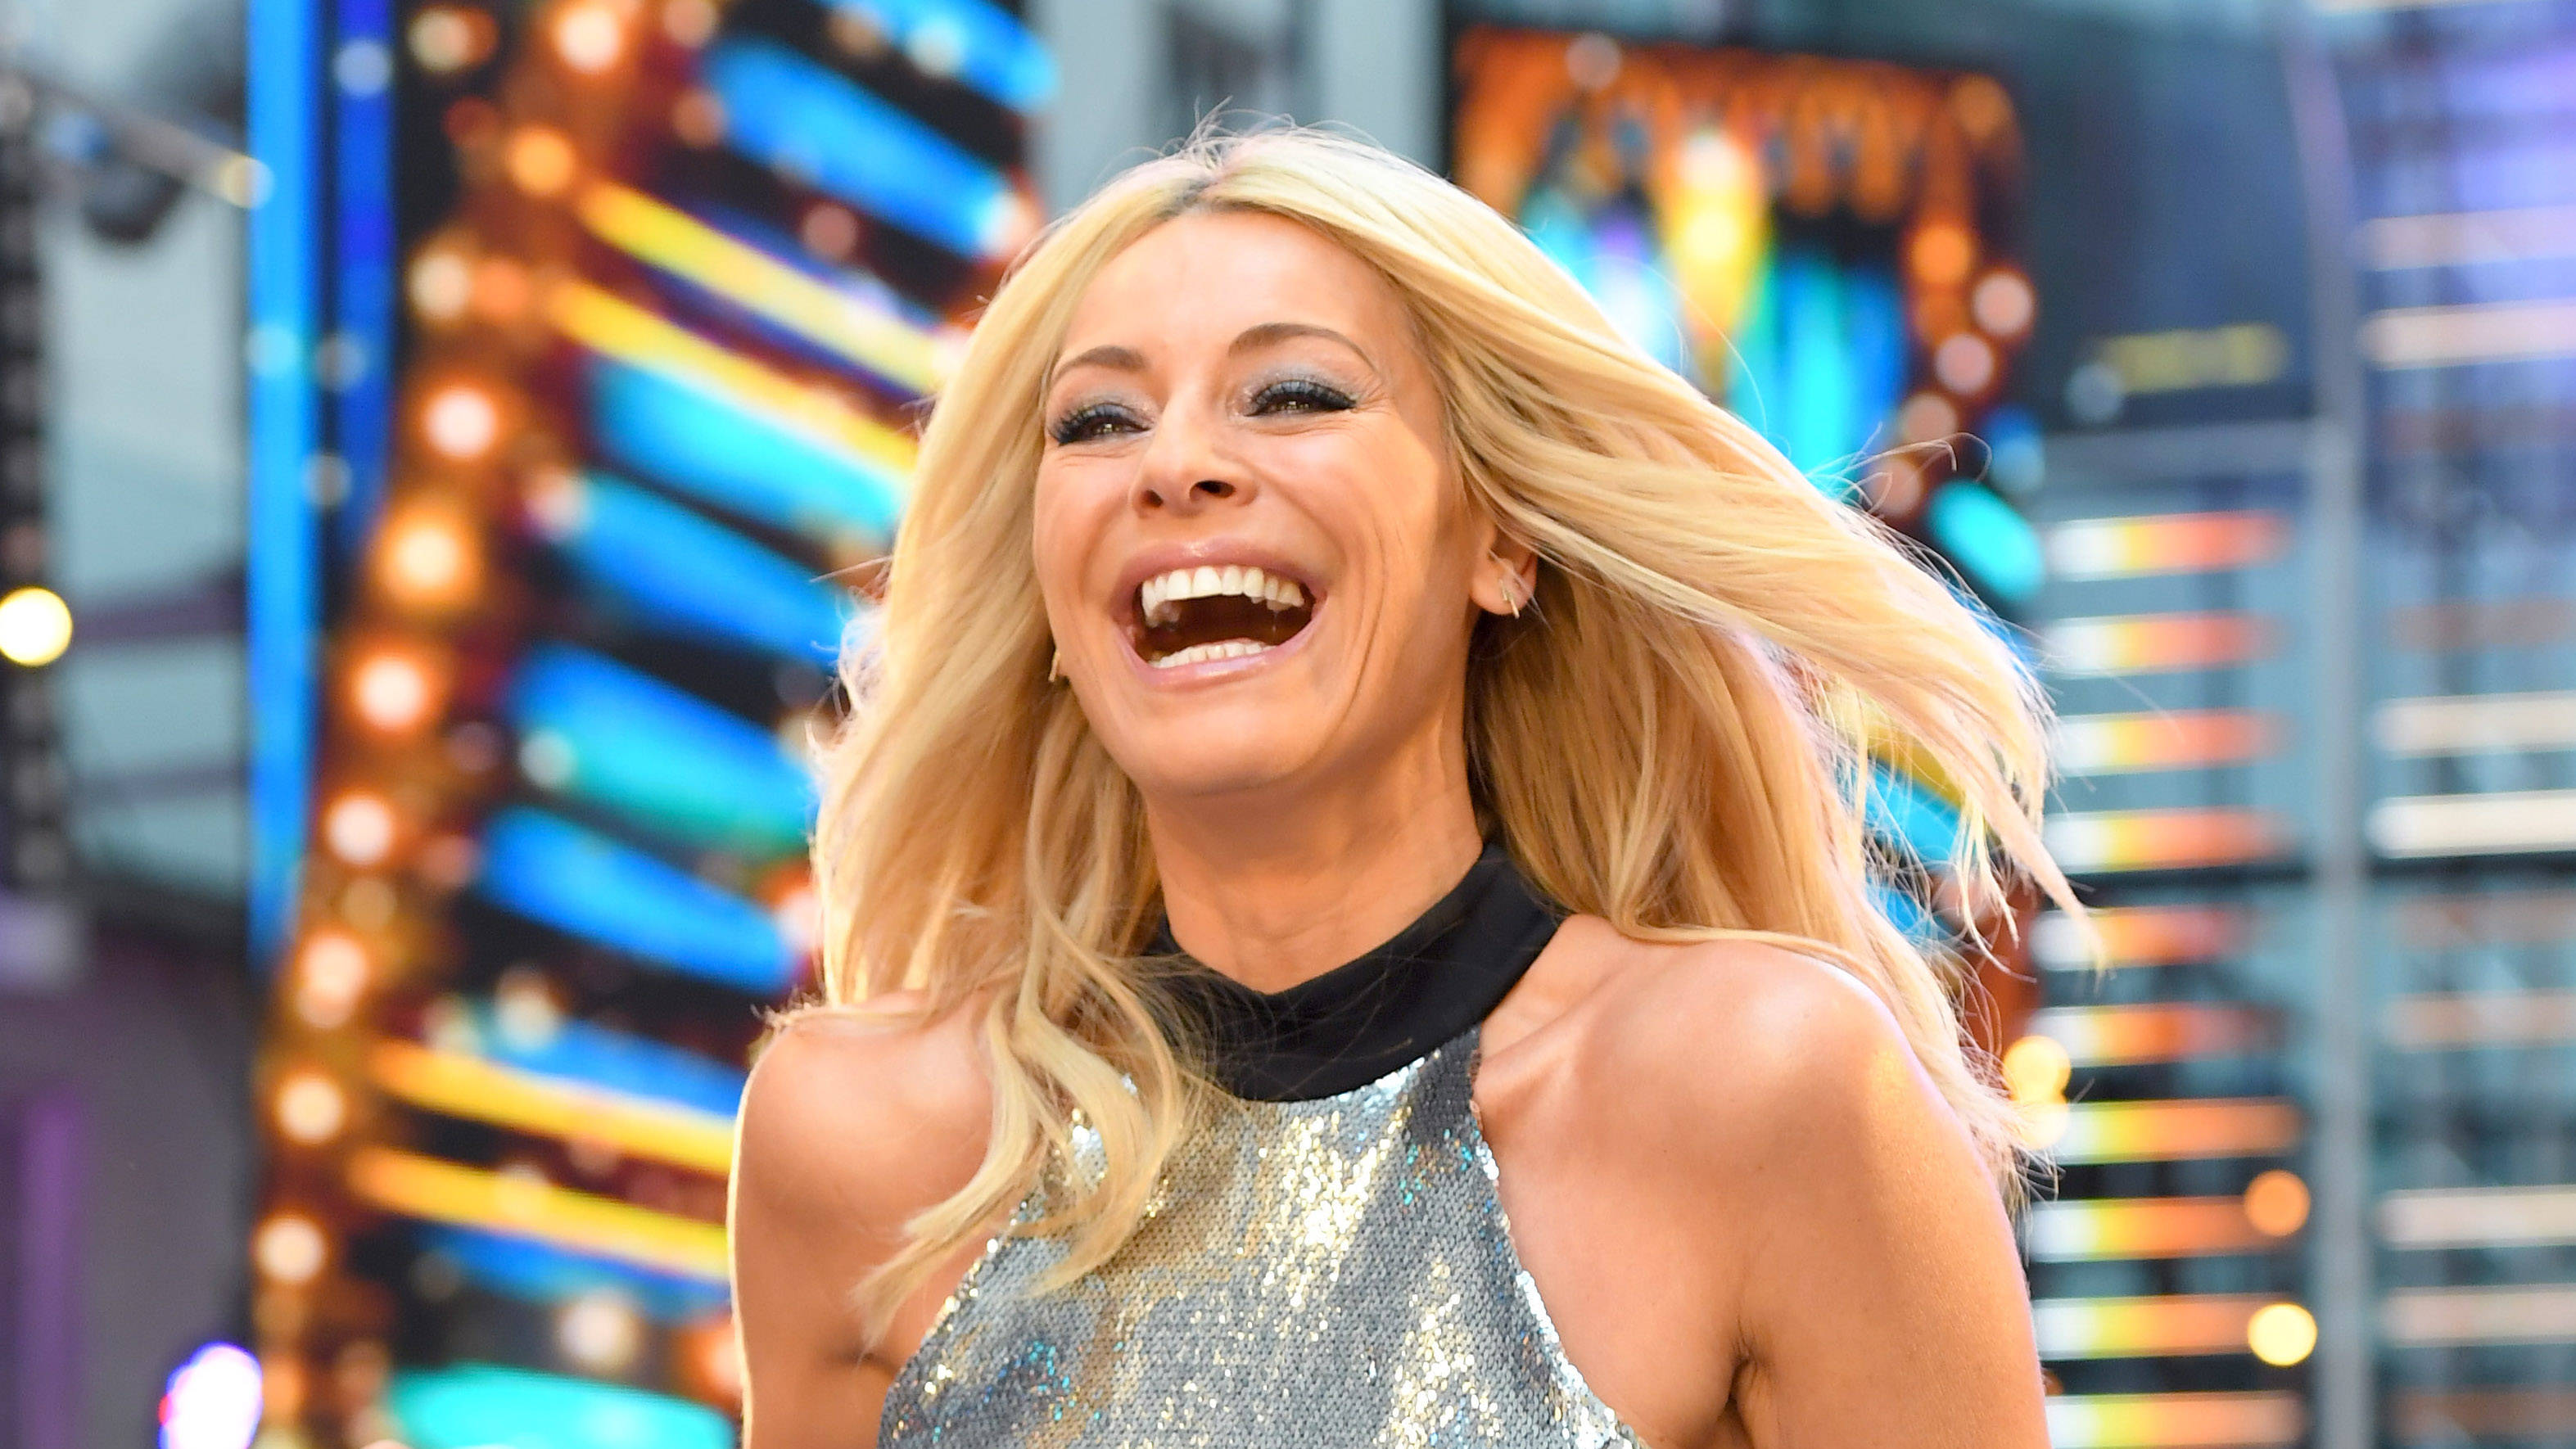 Tess Daly: Strictly Come Dancing star's age, husband, height